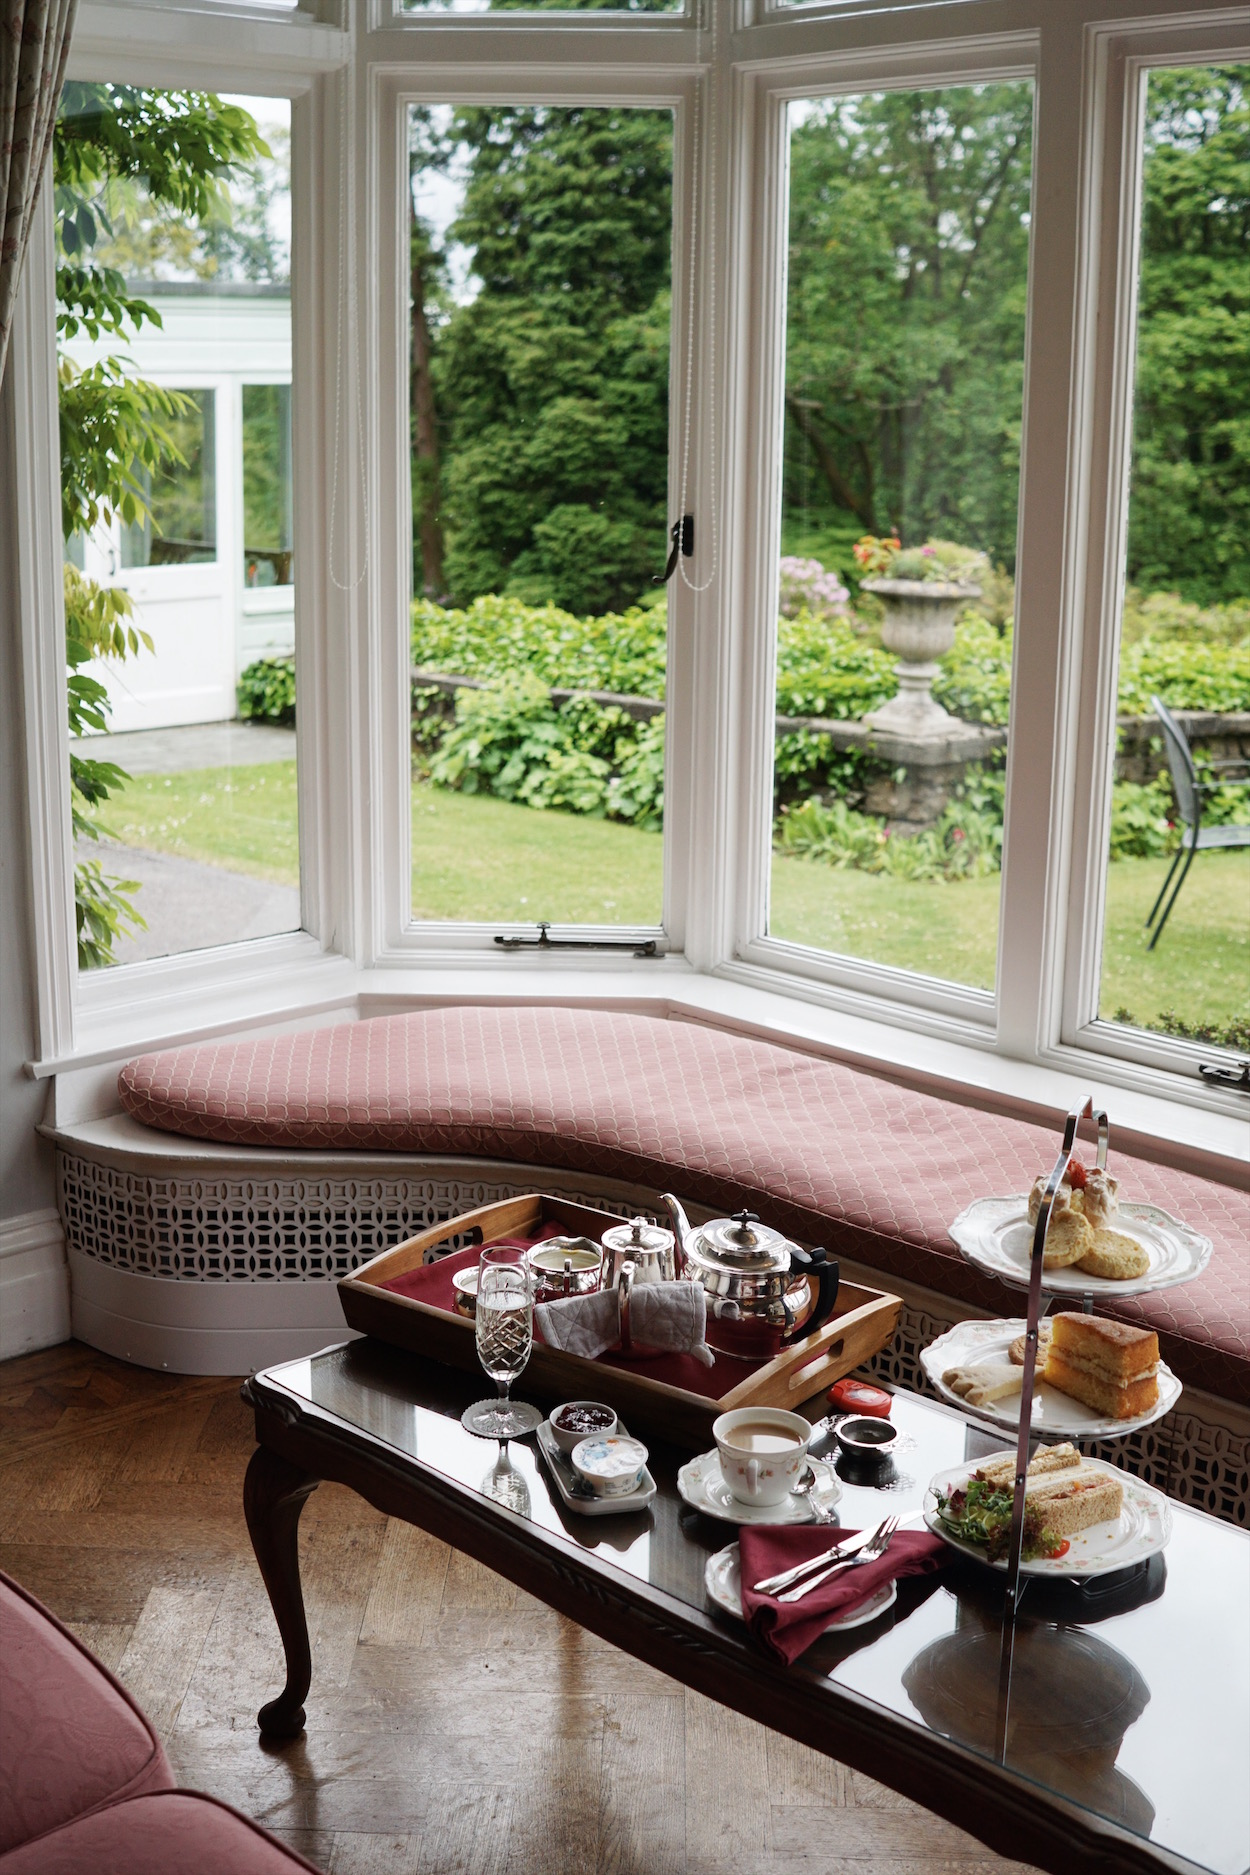 Lake District bed and breakfast